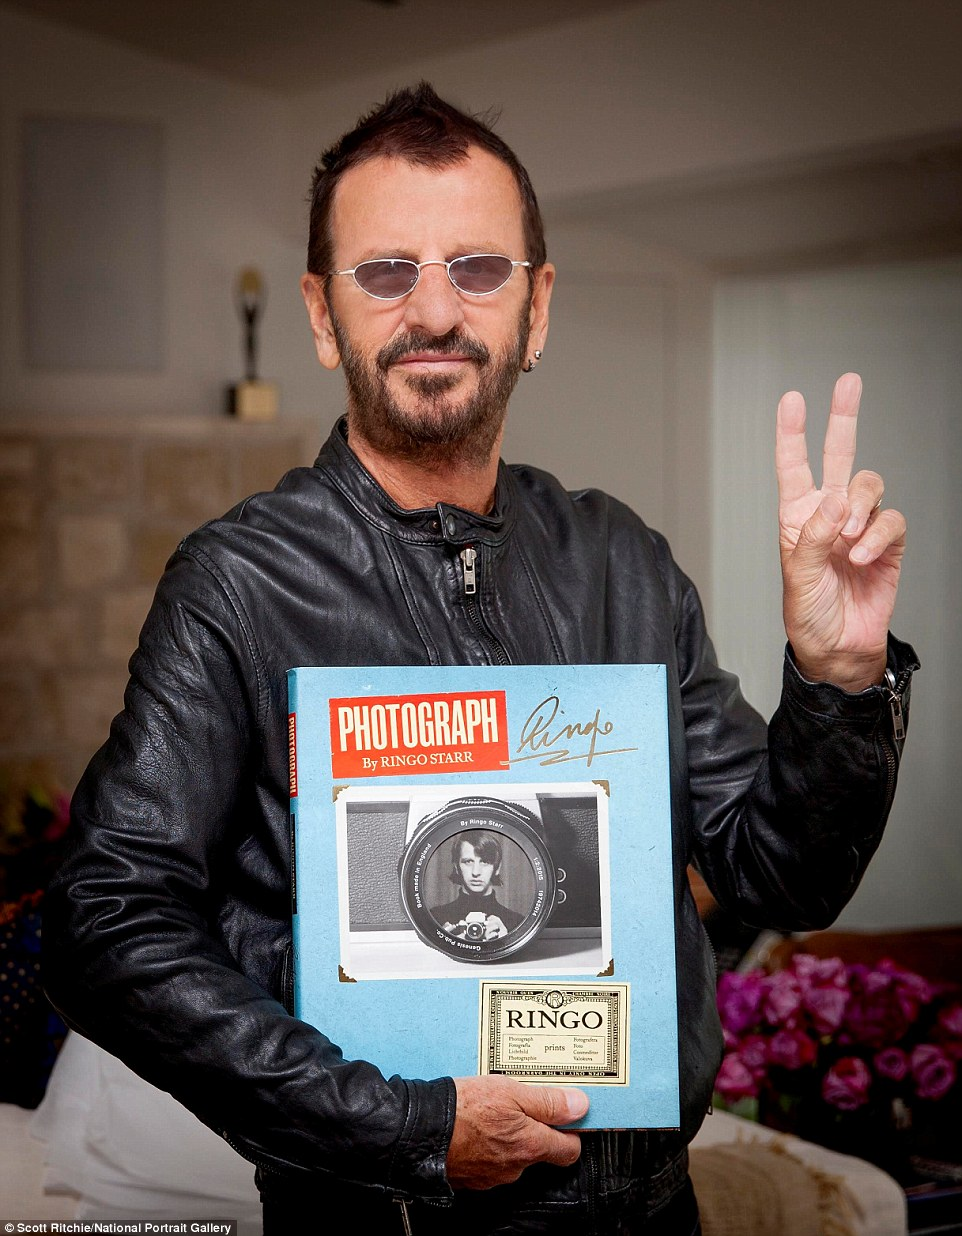 Job done: Ringo Starr pictured with a copy of the new book, Photograph. The tome is released on the 21st September